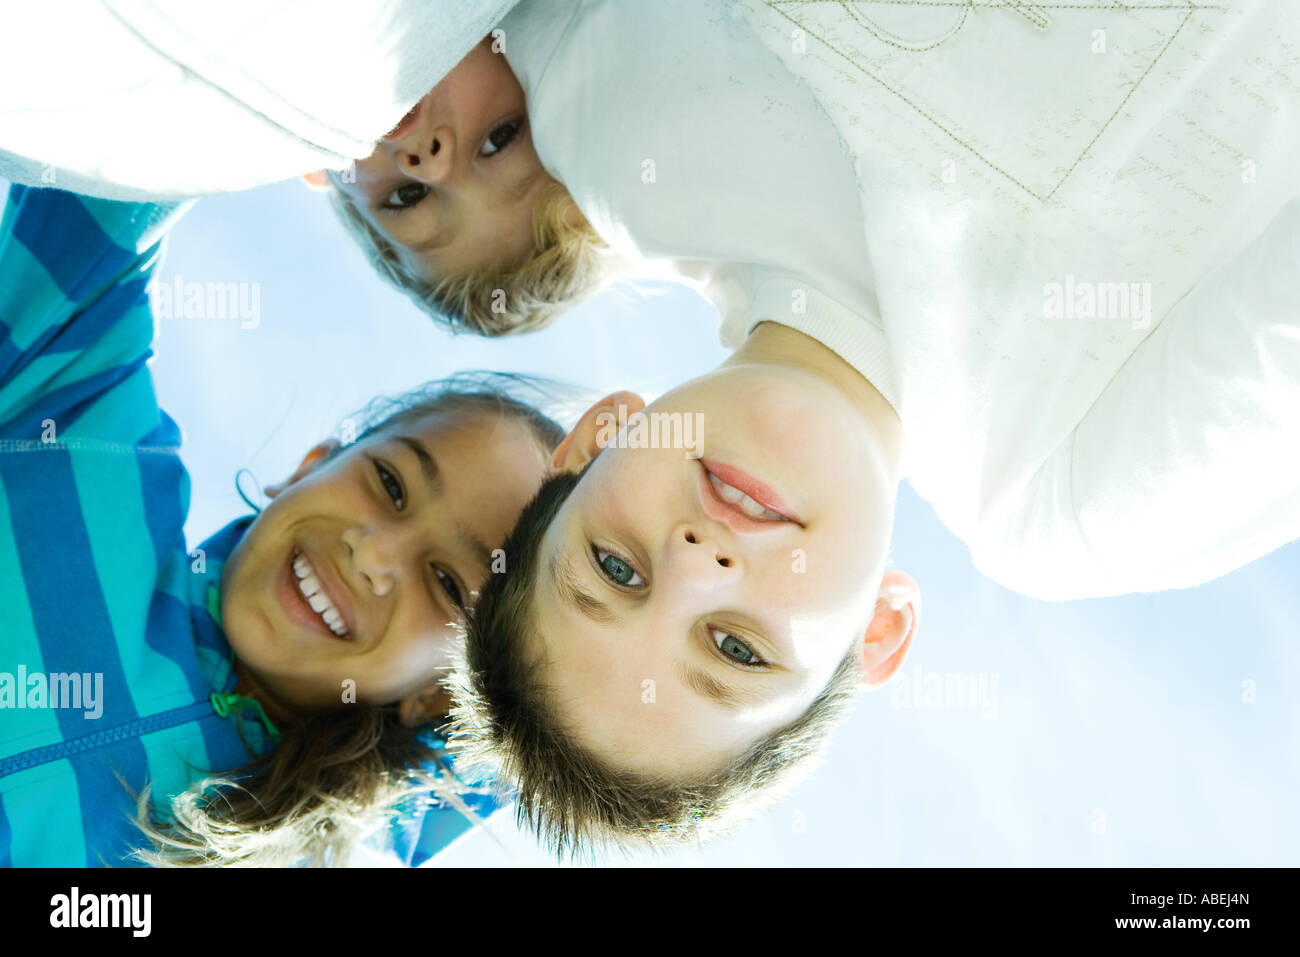 Children smiling at camera, view from directly below - Stock Image